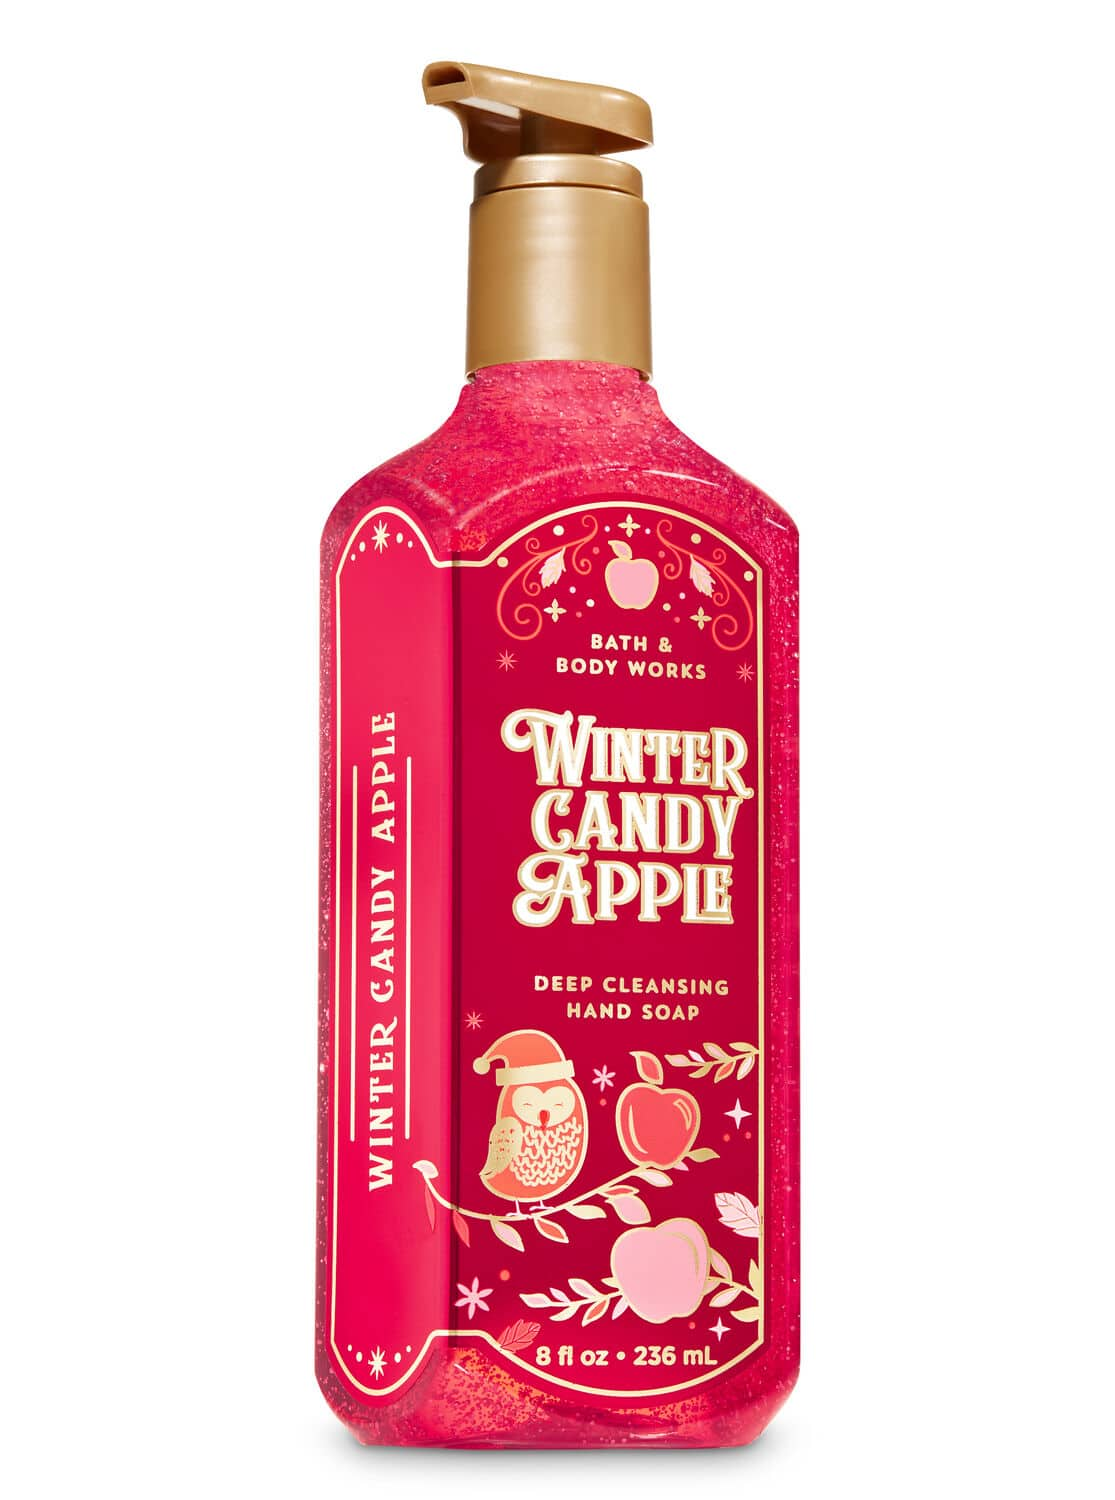 Bath and Body Hand Soaps $1.88 to $2.08 ymmv